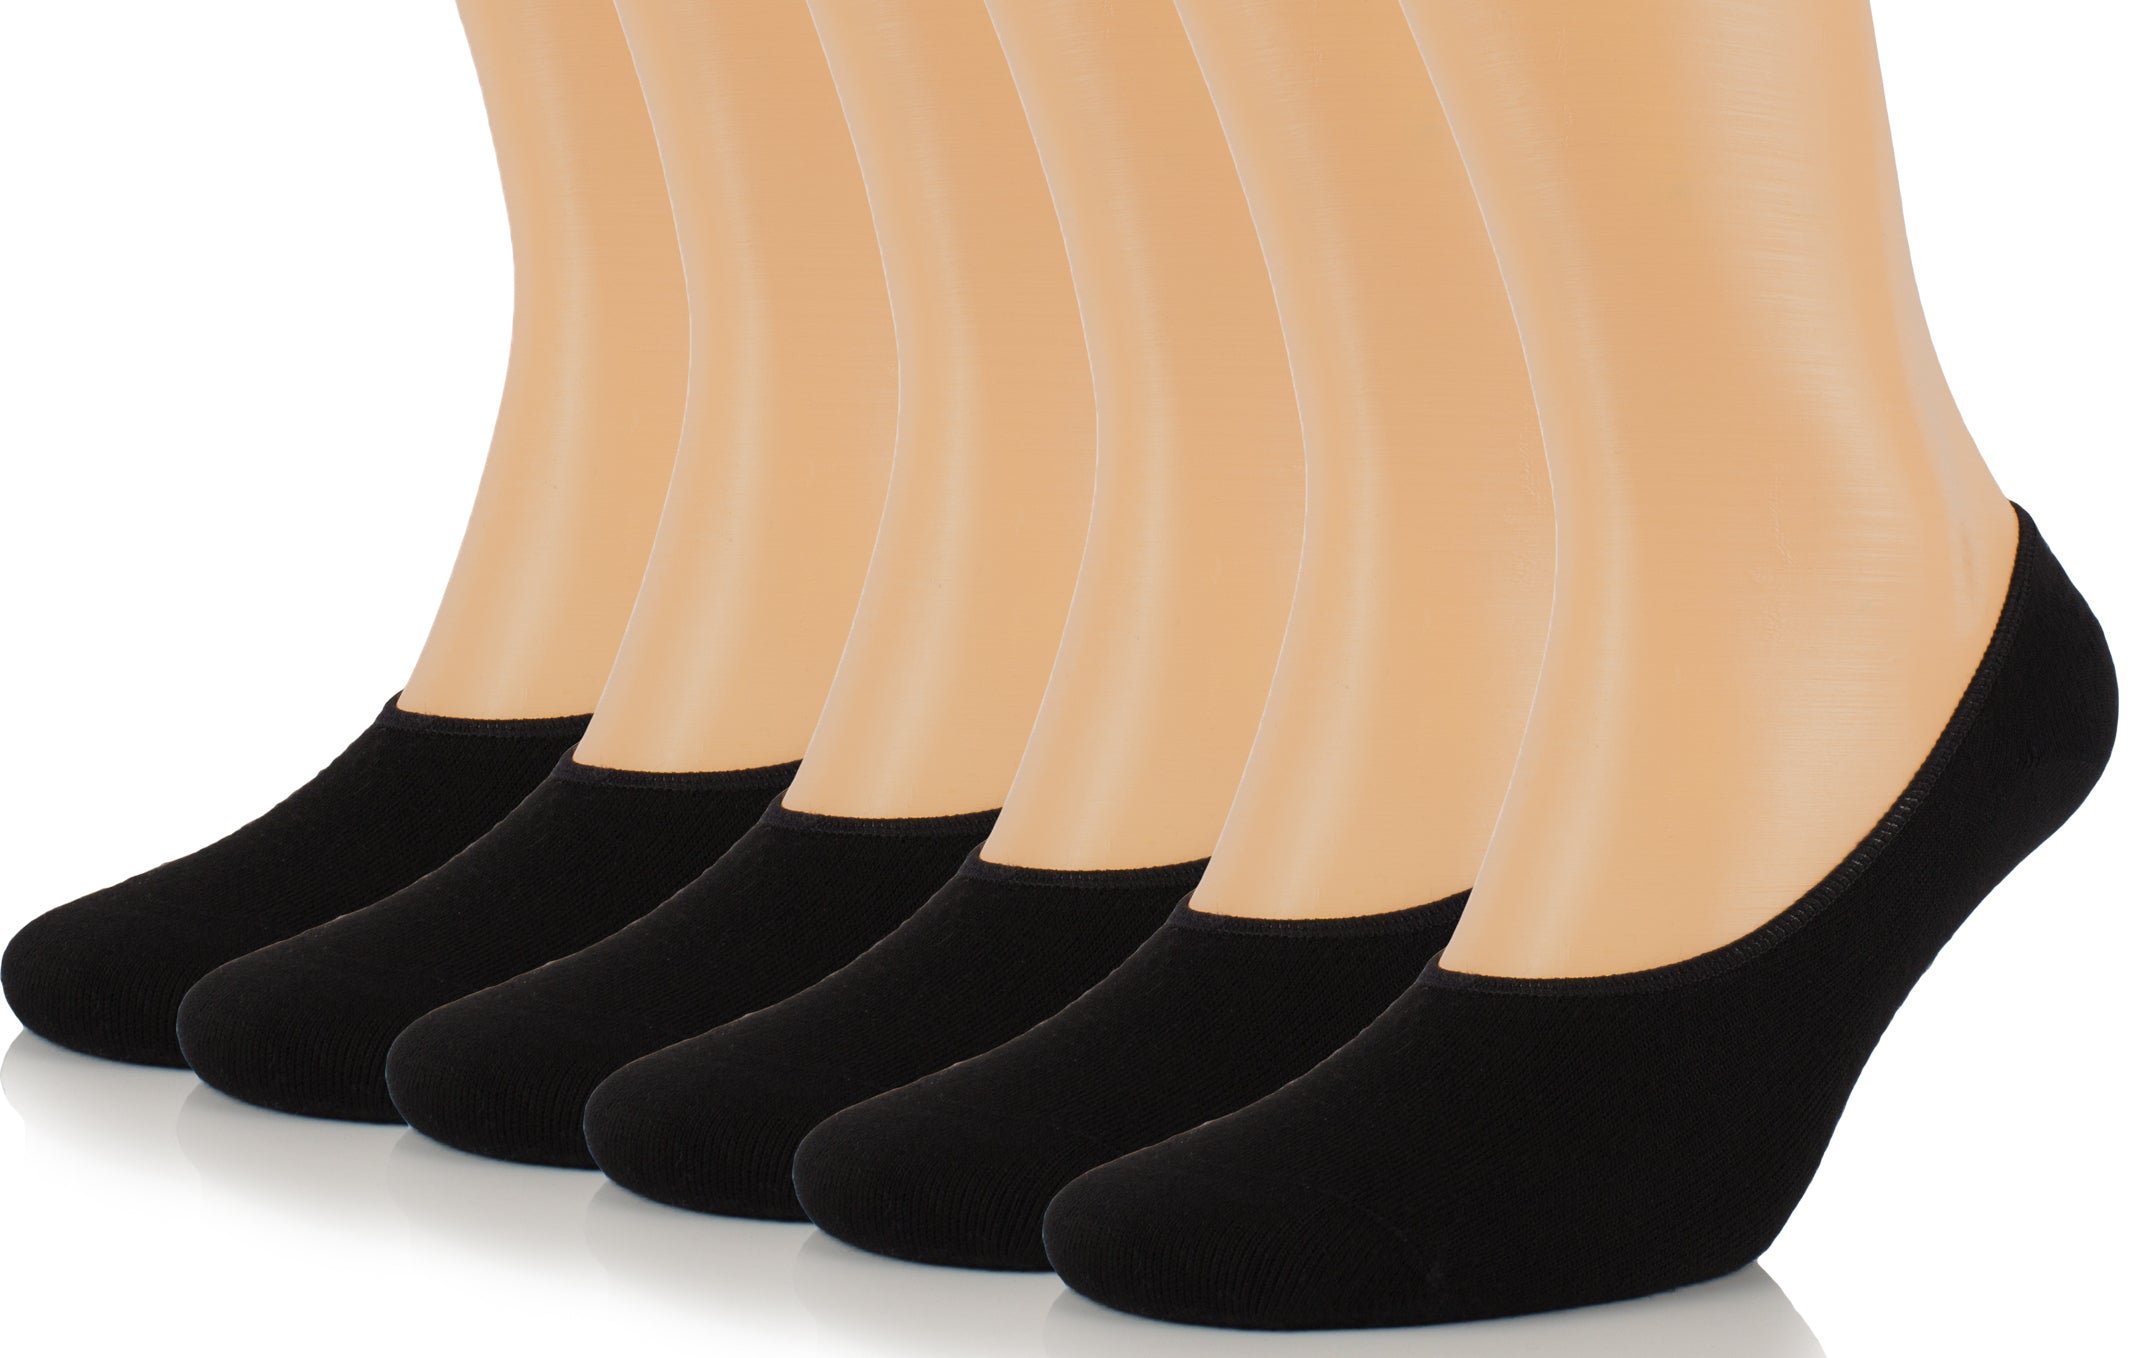 Hugh Ugoli Men's Bamboo No Show Liner Socks Seamless Toe Low Cut Non Slip Socks - 6 Pairs, Shoe Size: 7-12